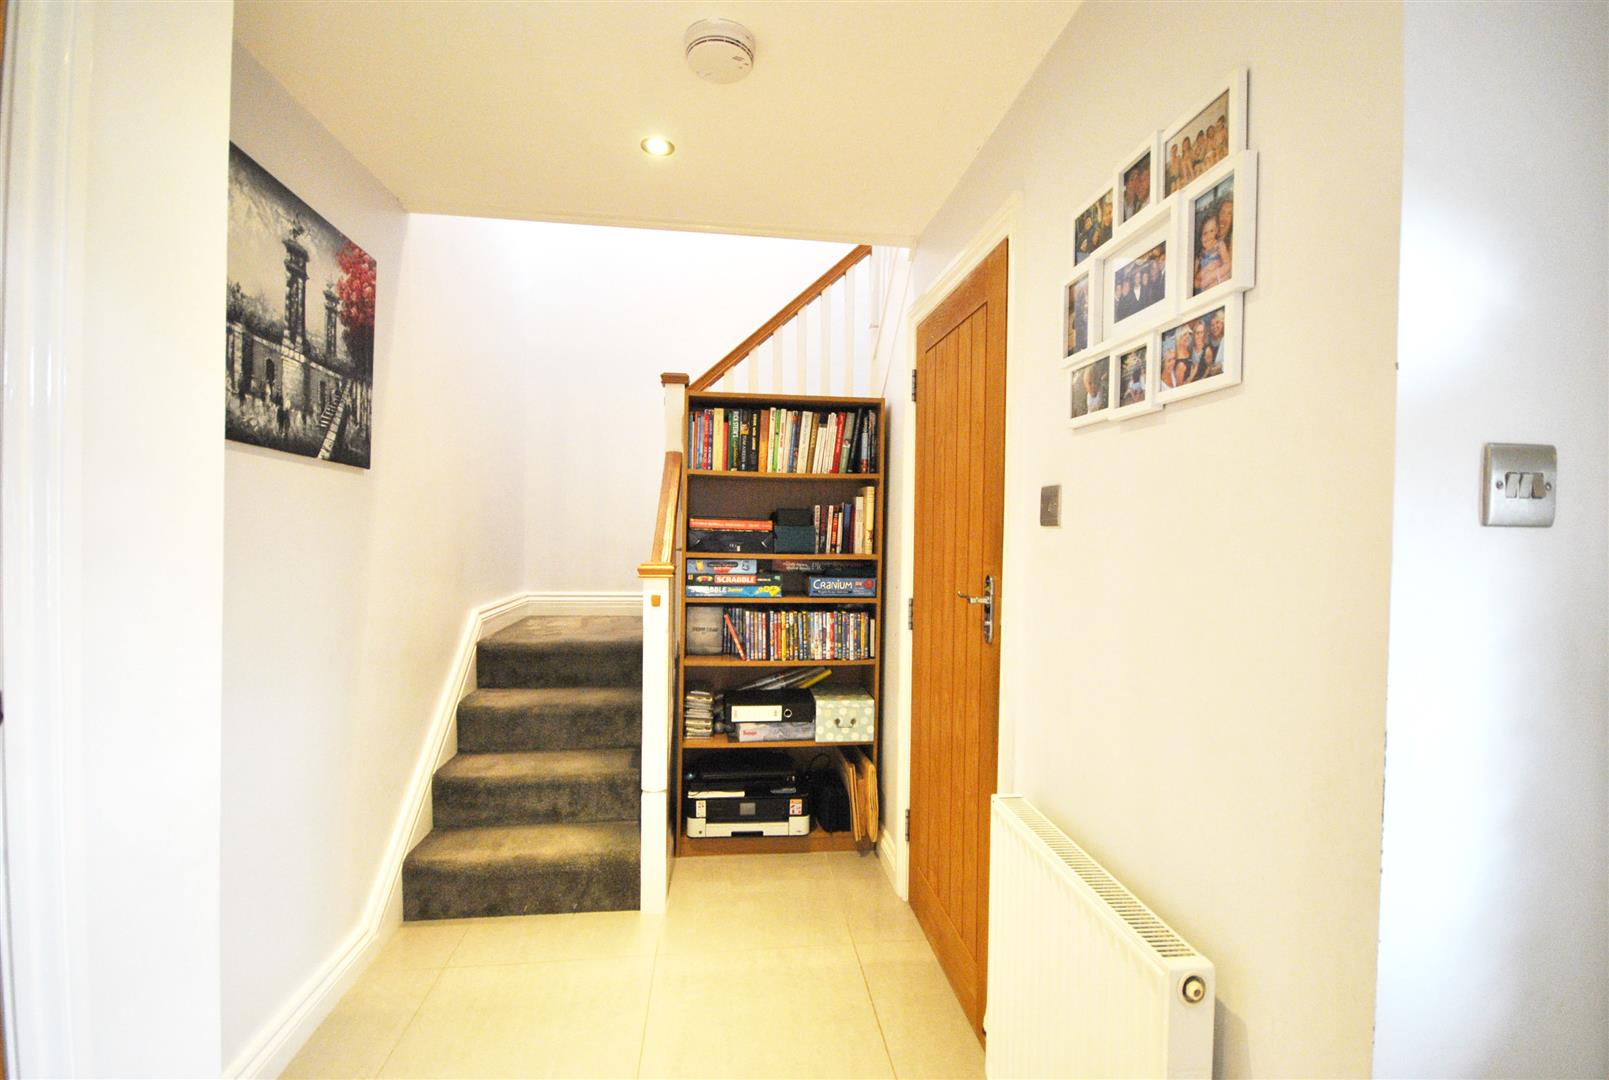 3 Bedrooms, House - End Terrace